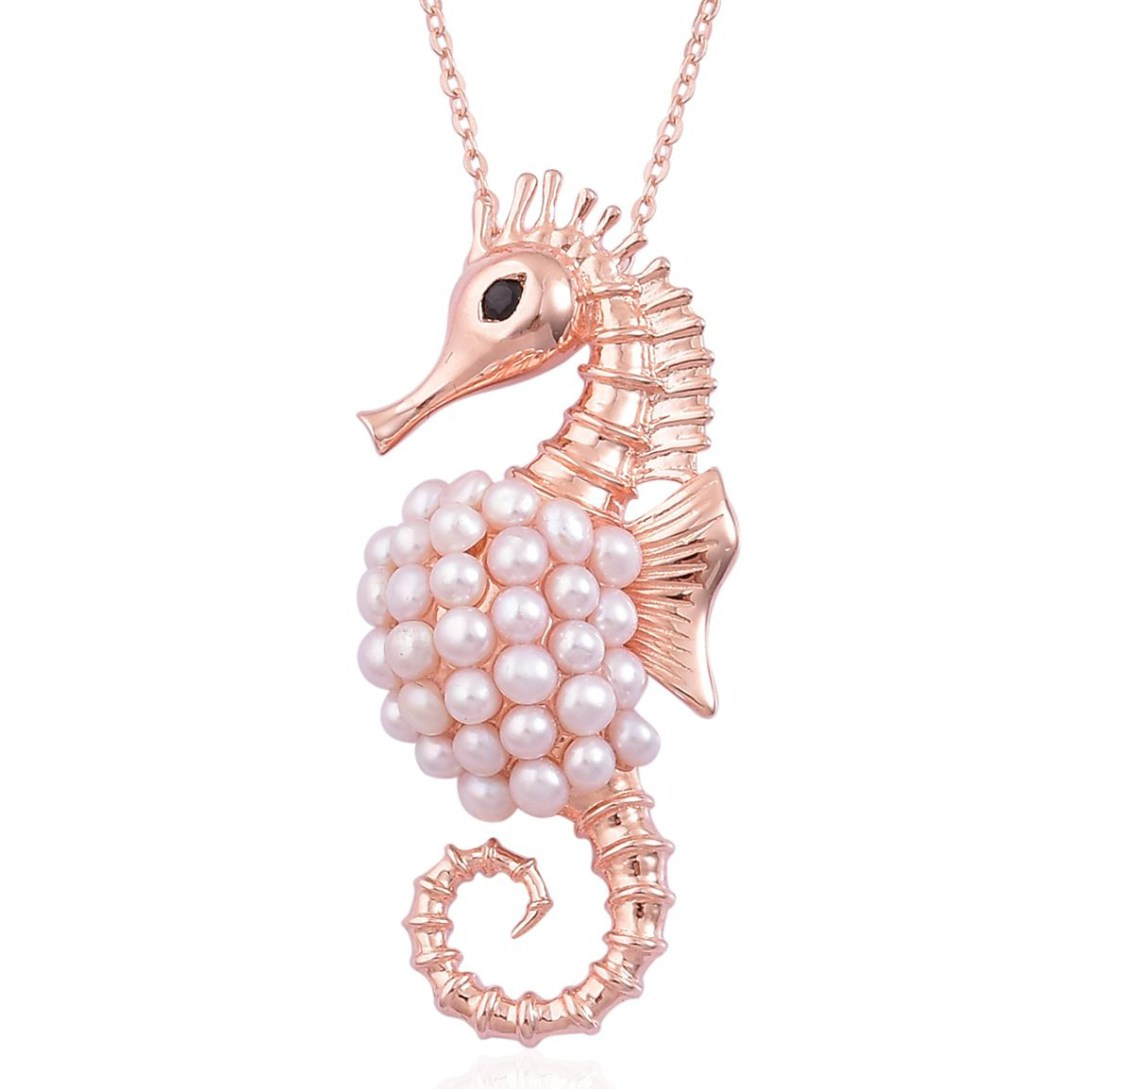 Halloween Jewelry - Seahorse Necklace